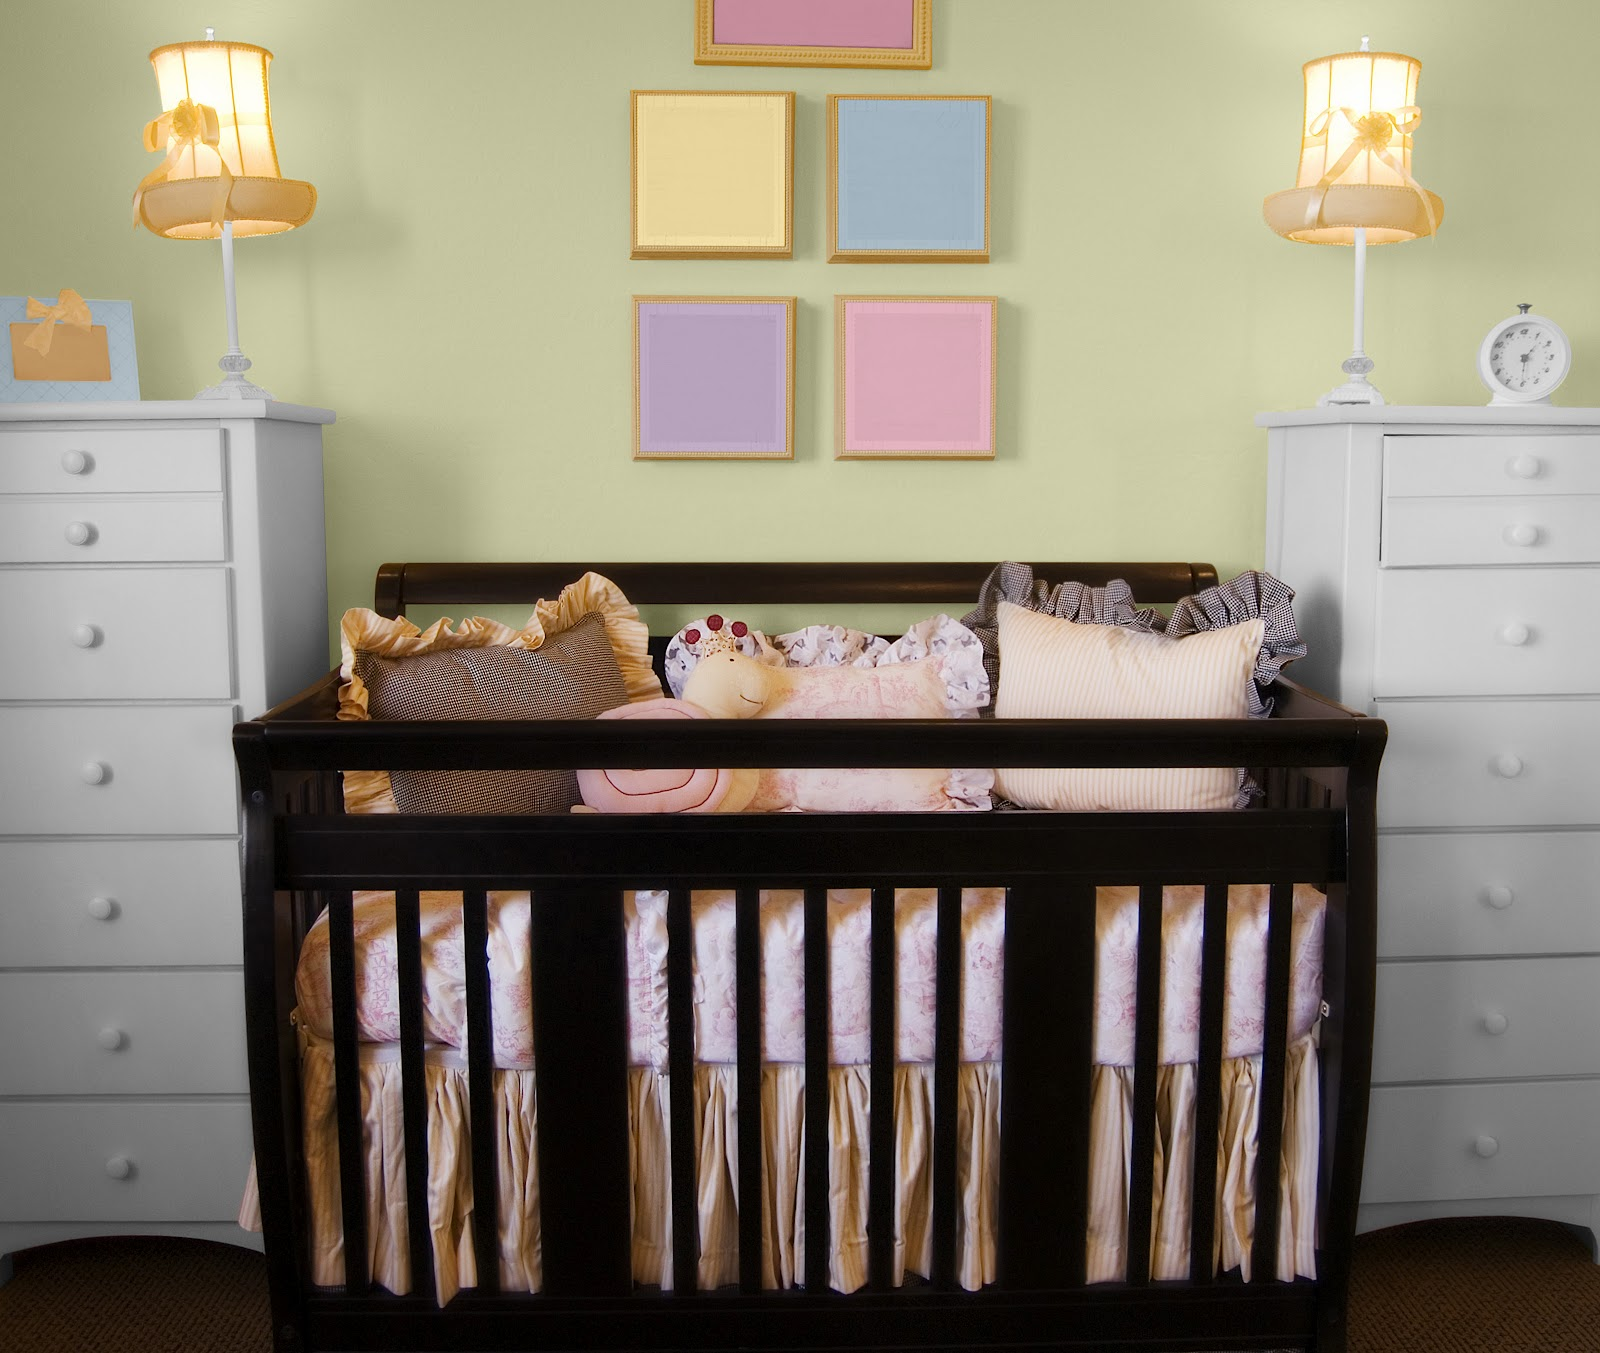 Top 10 baby nursery room colors and decorating ideas for Babies decoration room